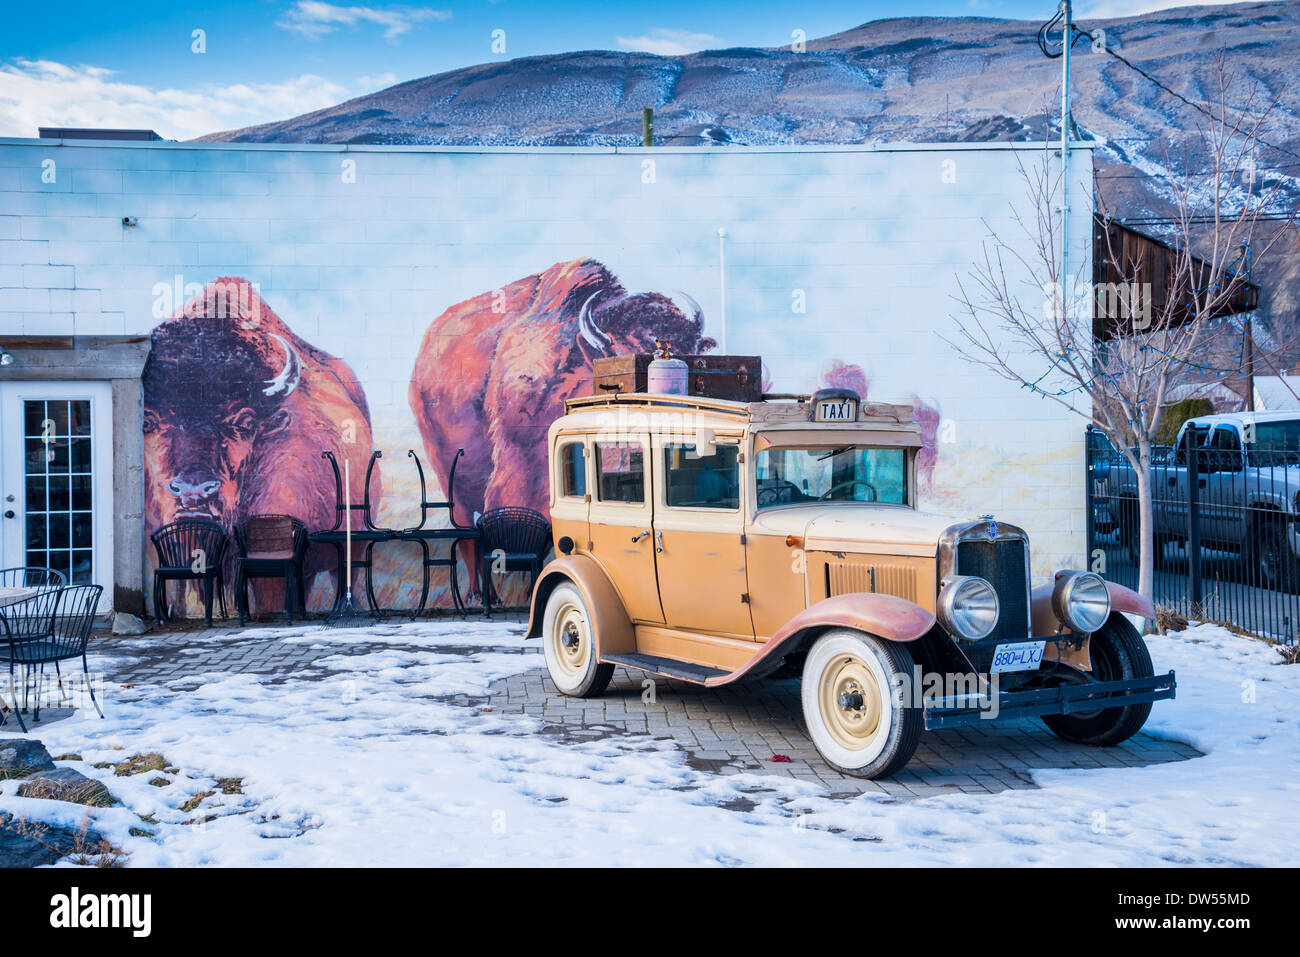 Fresque de bison et vintage chevrolet taxi cab, Ashcroft, Colombie-Britannique, Canada Photo Stock